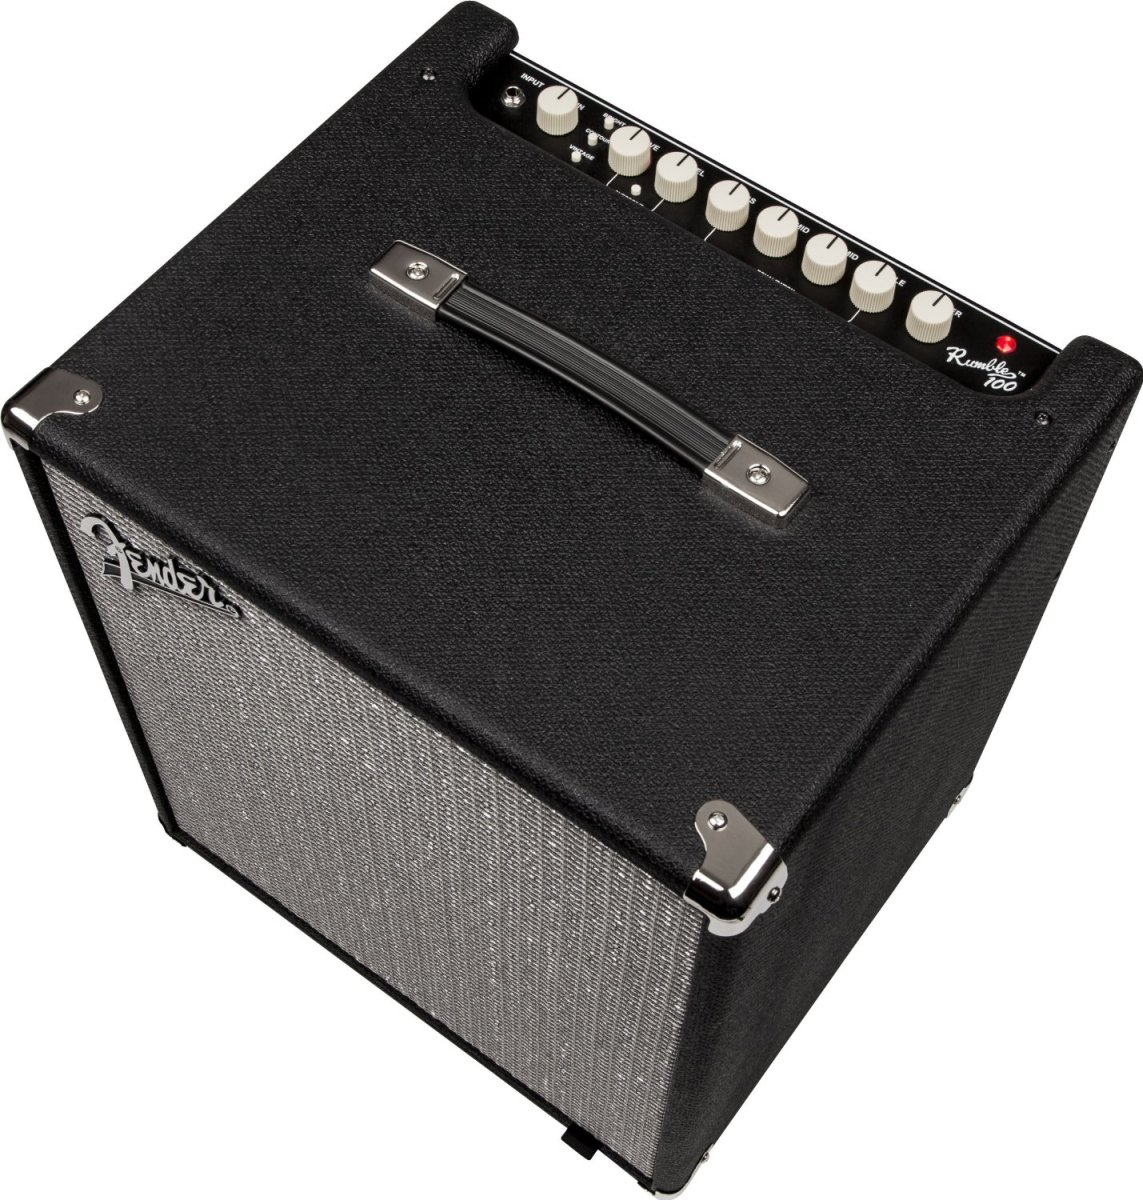 Fender Rumble 100 Bass Combo Amp